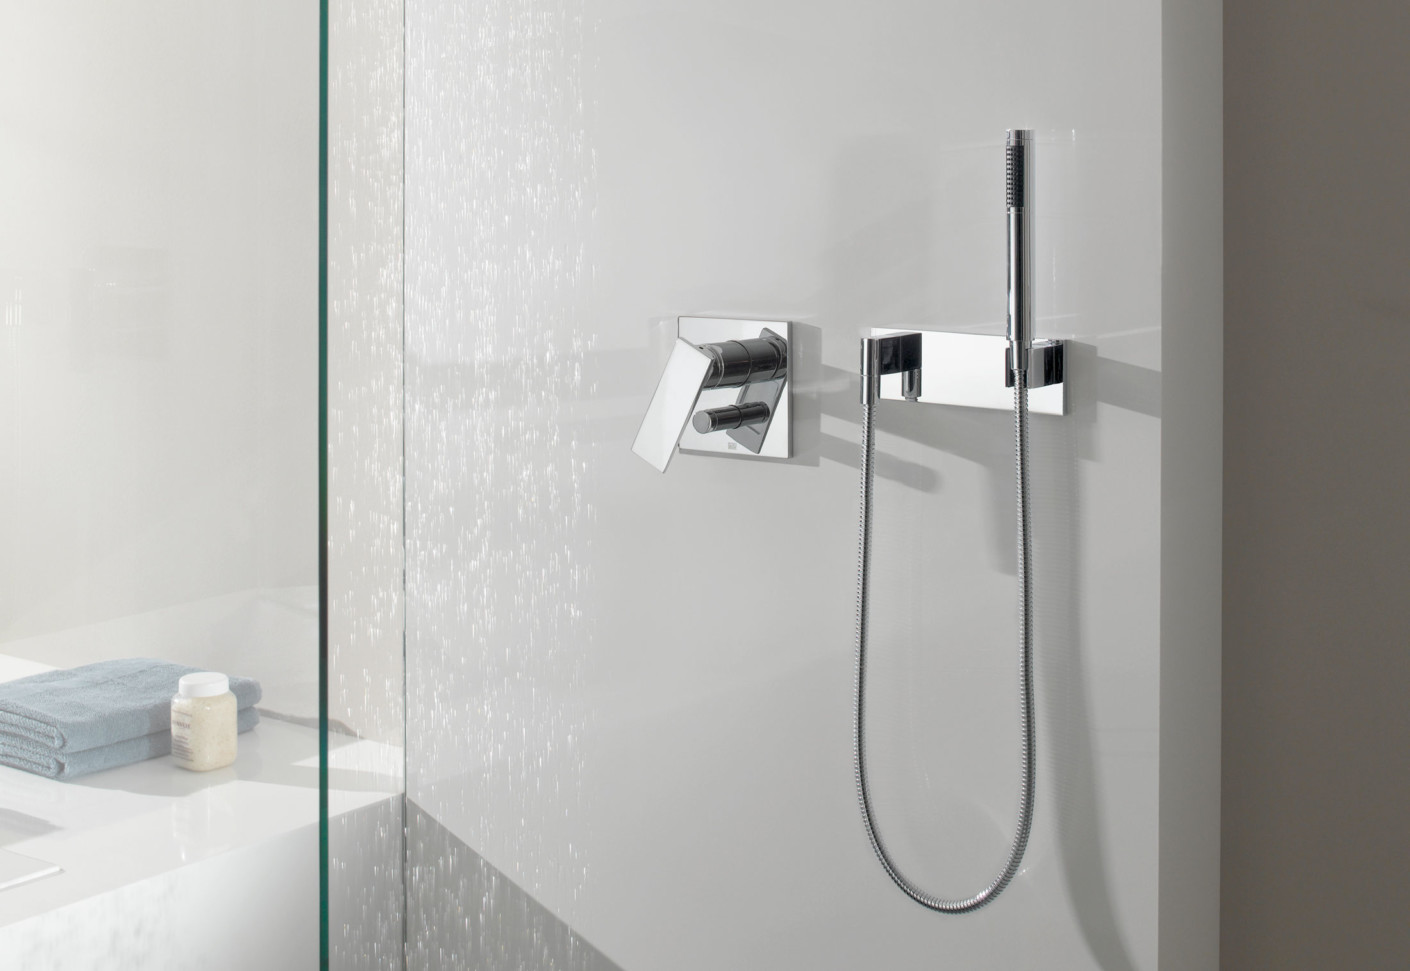 Supernova Complete hand shower set by Dornbracht | STYLEPARK